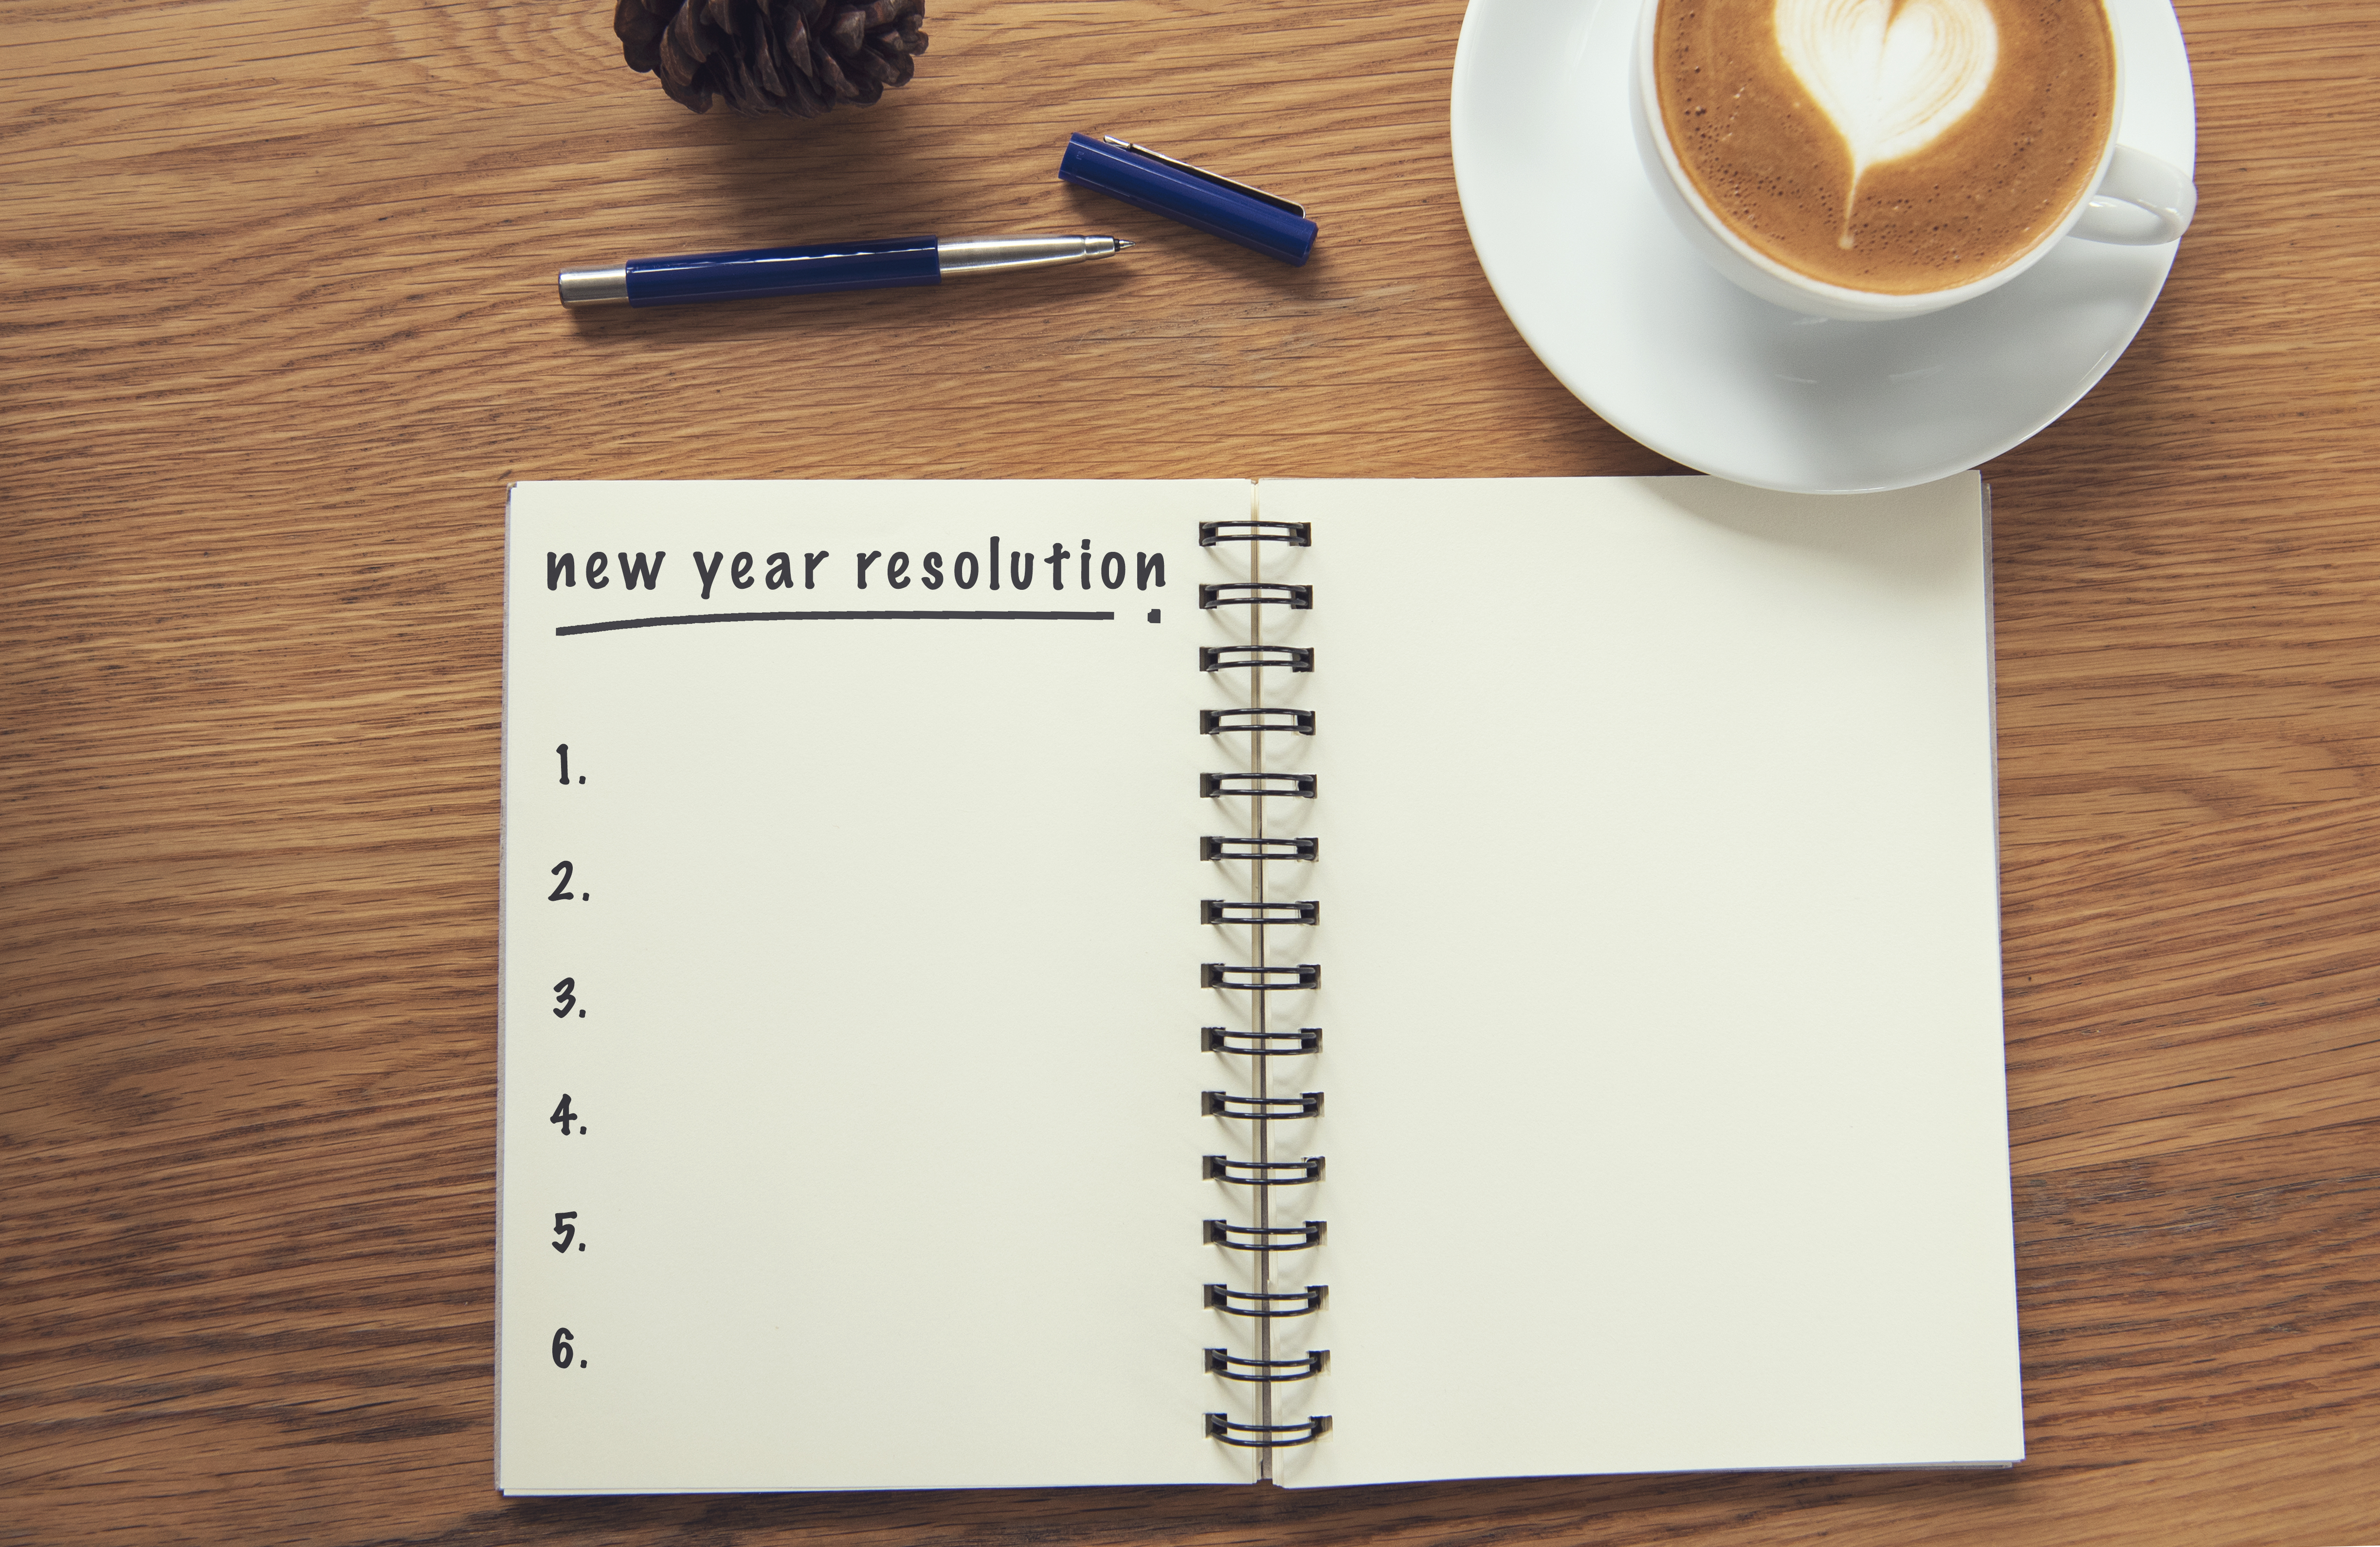 IT resolutions